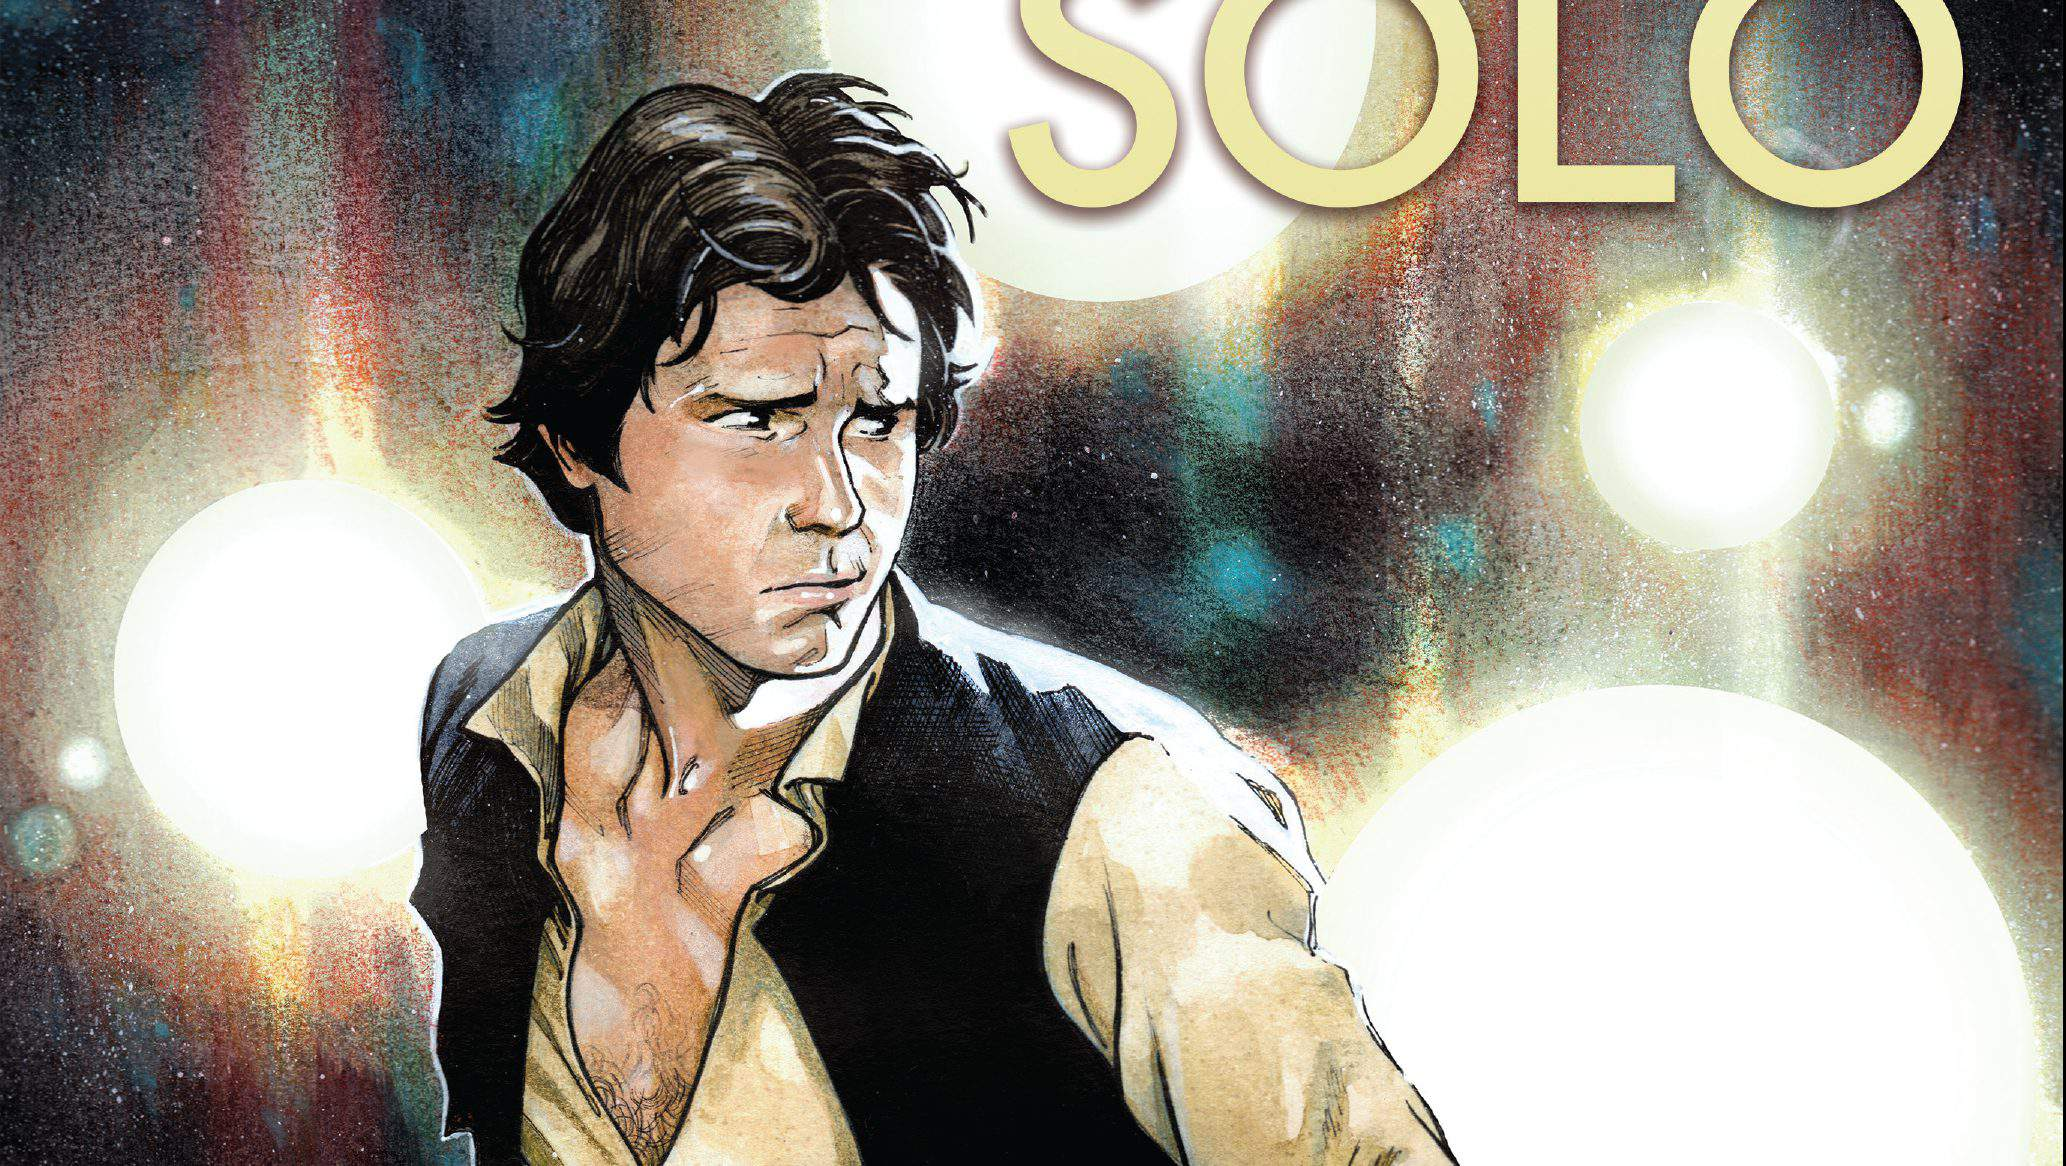 'Han Solo' #4: A Little Scruffy Looking